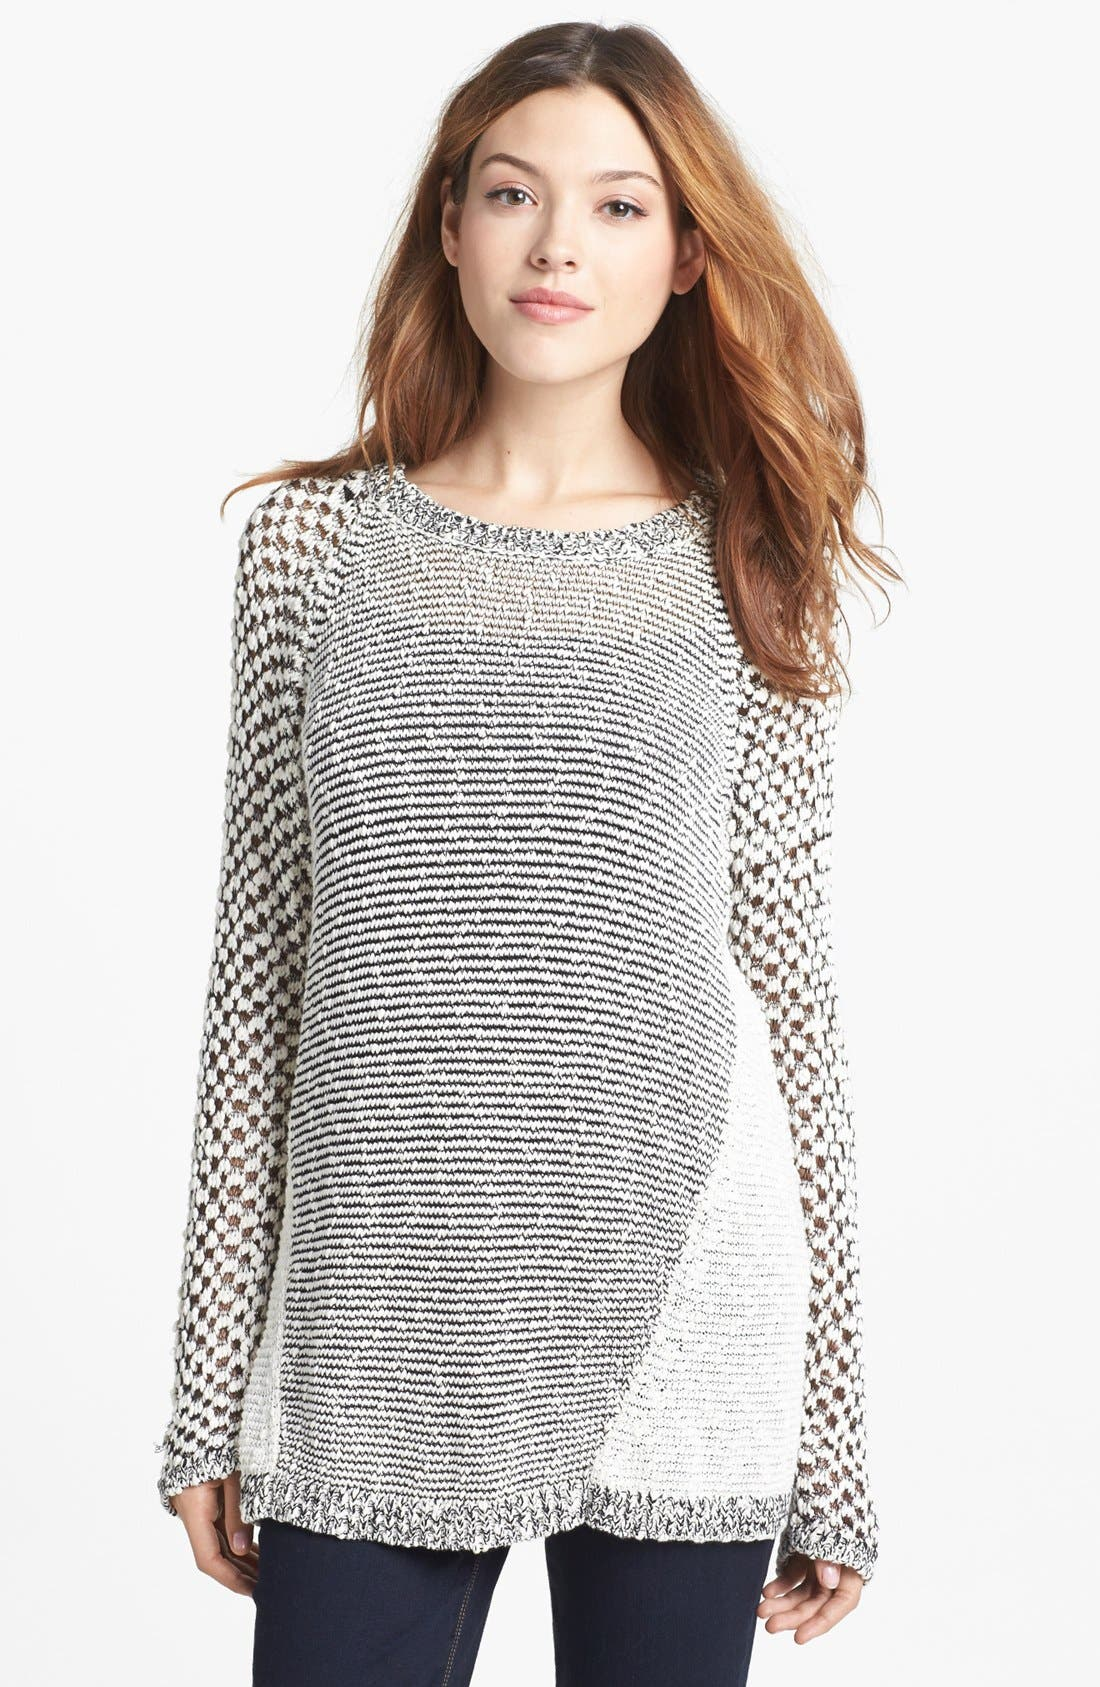 Main Image - Two by Vince Camuto Mixed Stitch Crewneck Sweater